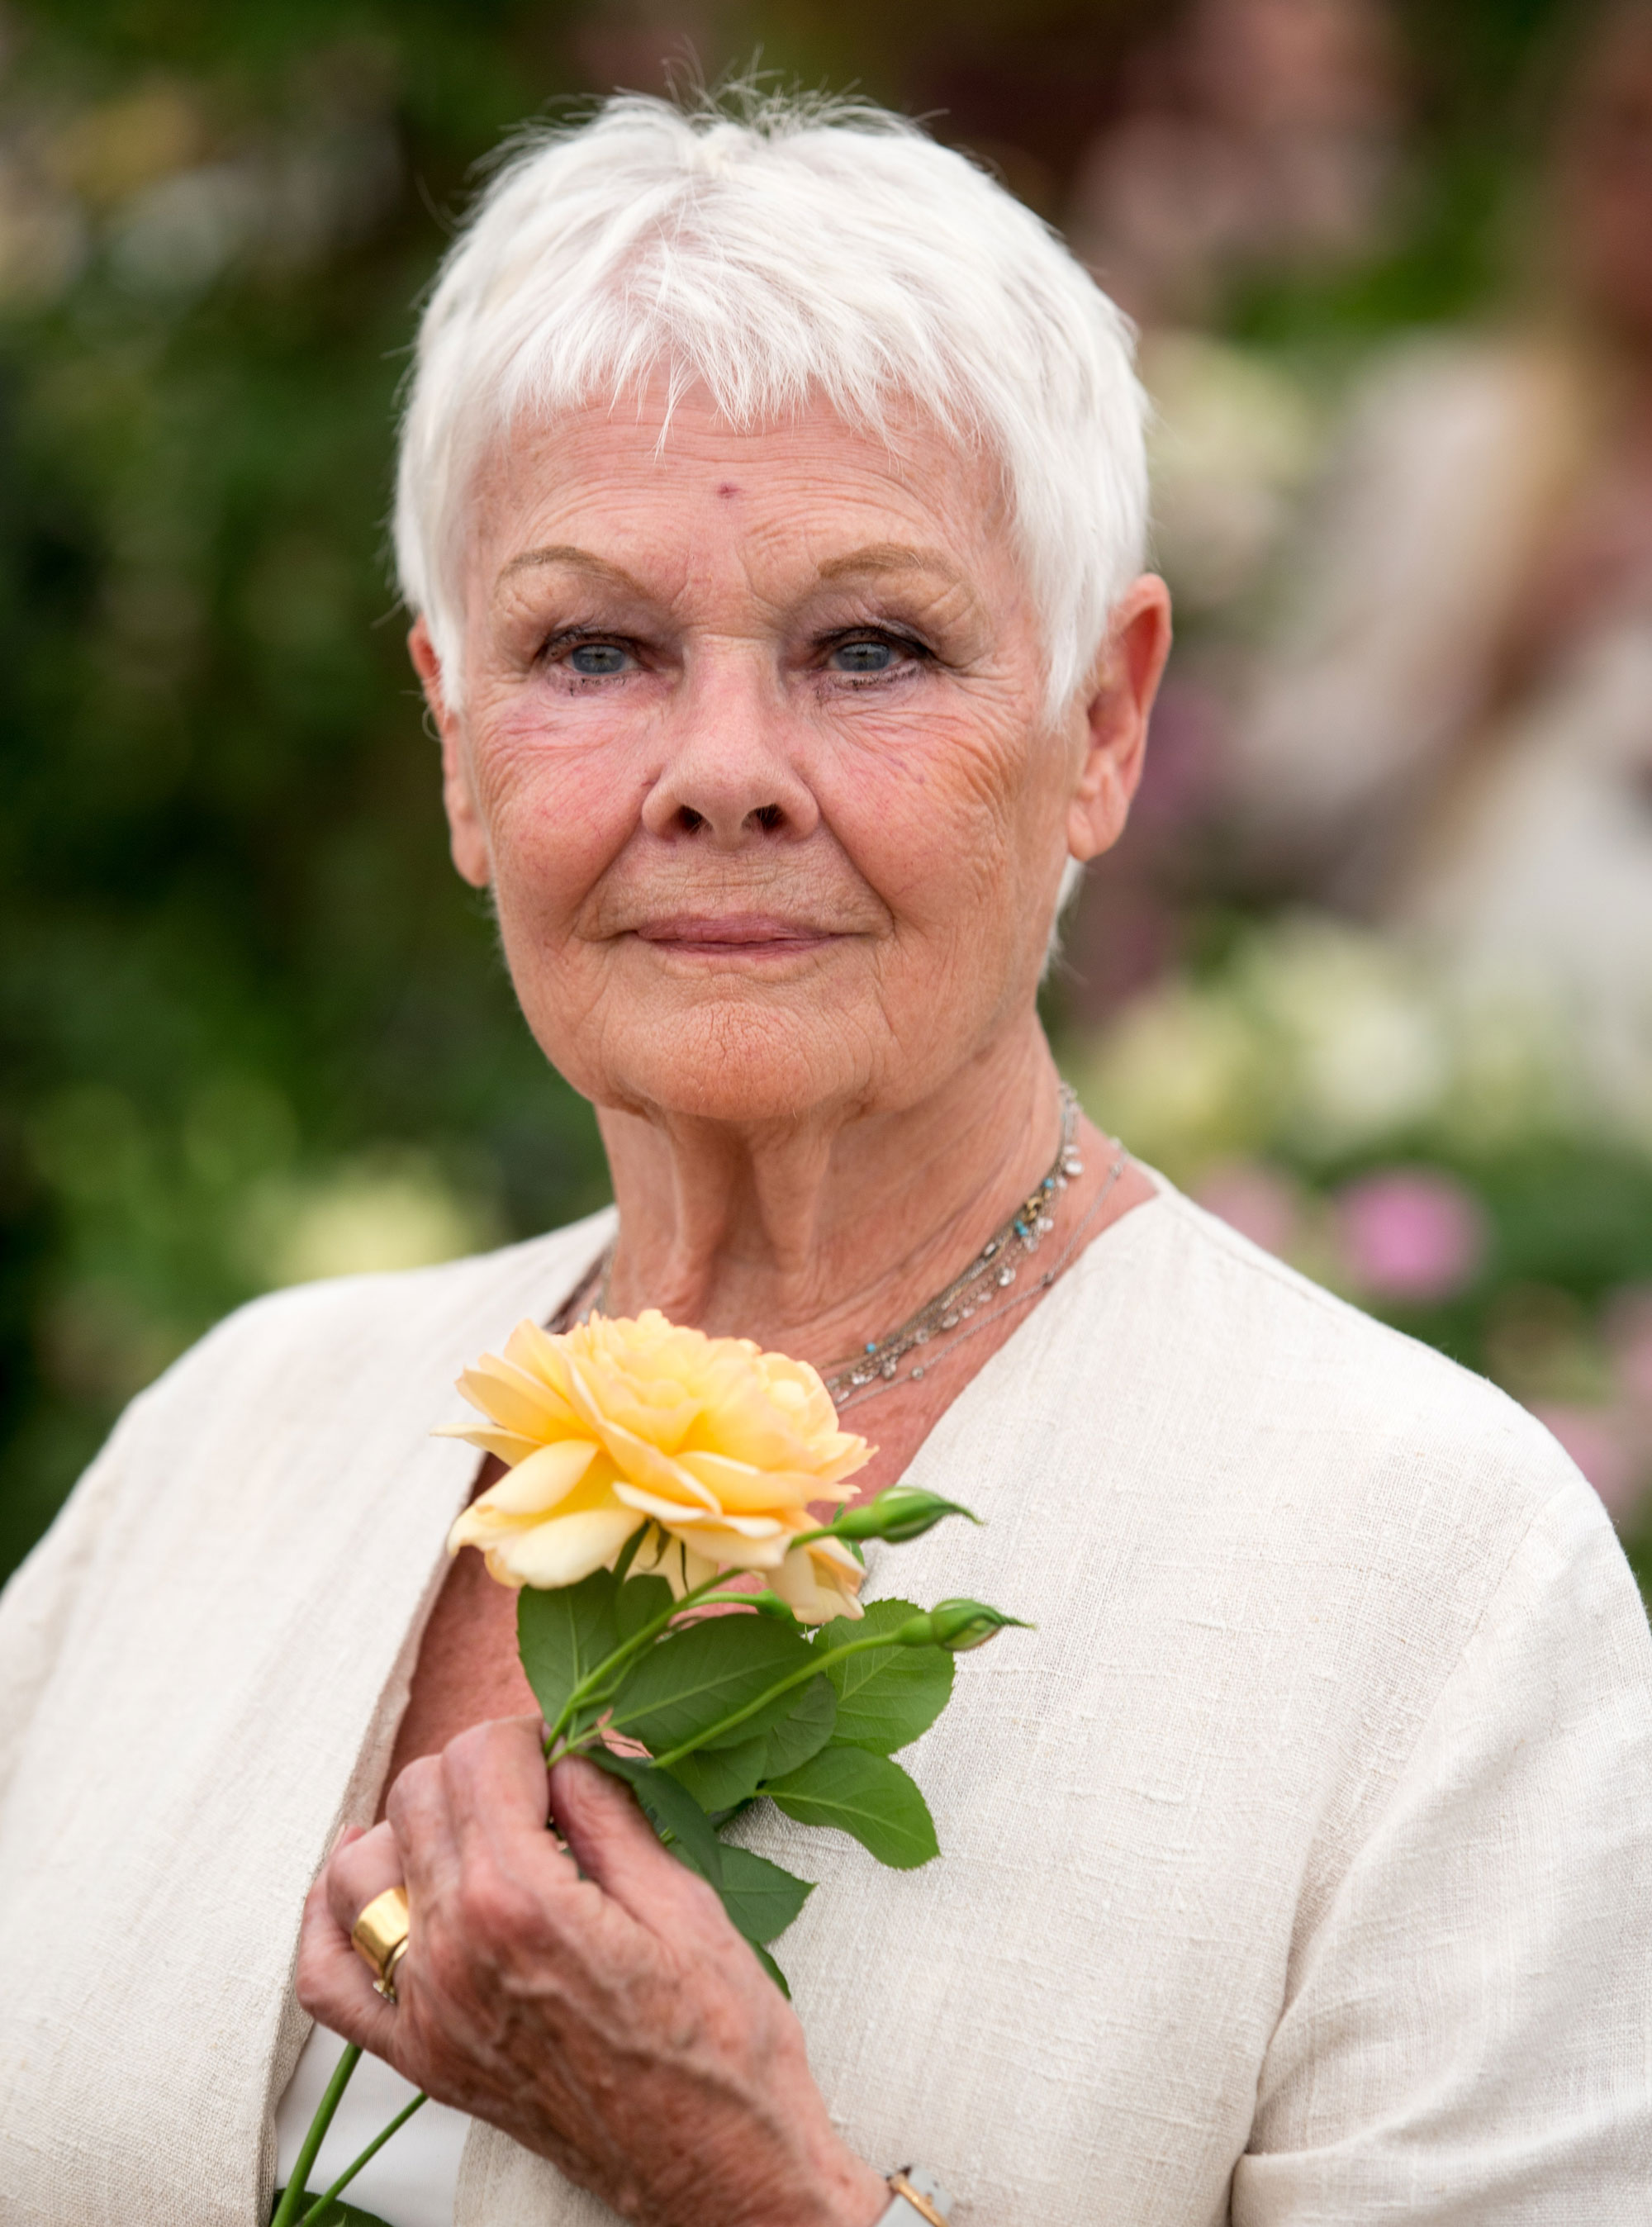 Feet Judi Dench nudes (29 photo) Hacked, Snapchat, panties